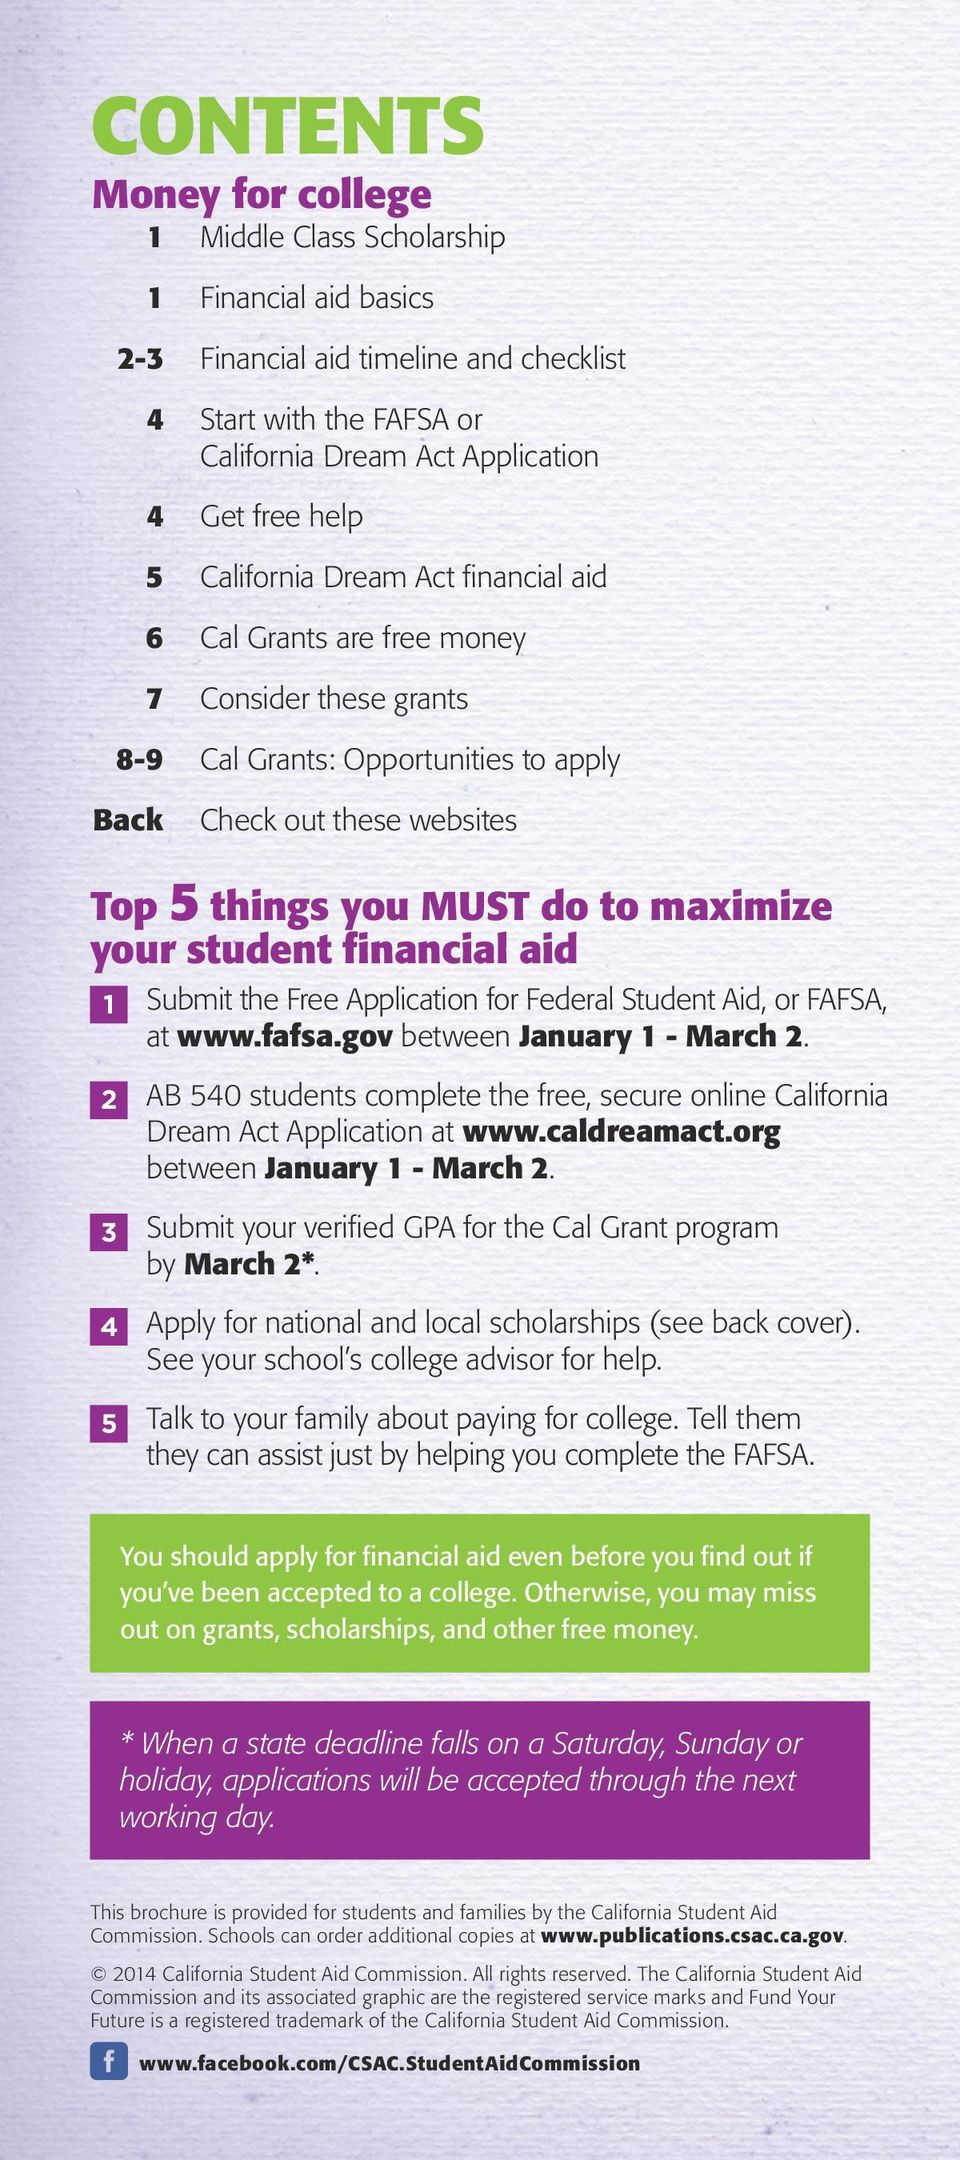 student financial aid 1 Submit the Free Application for Federal Student Aid, or FAFSA, at www.fafsa.gov between January 1 - March 2.